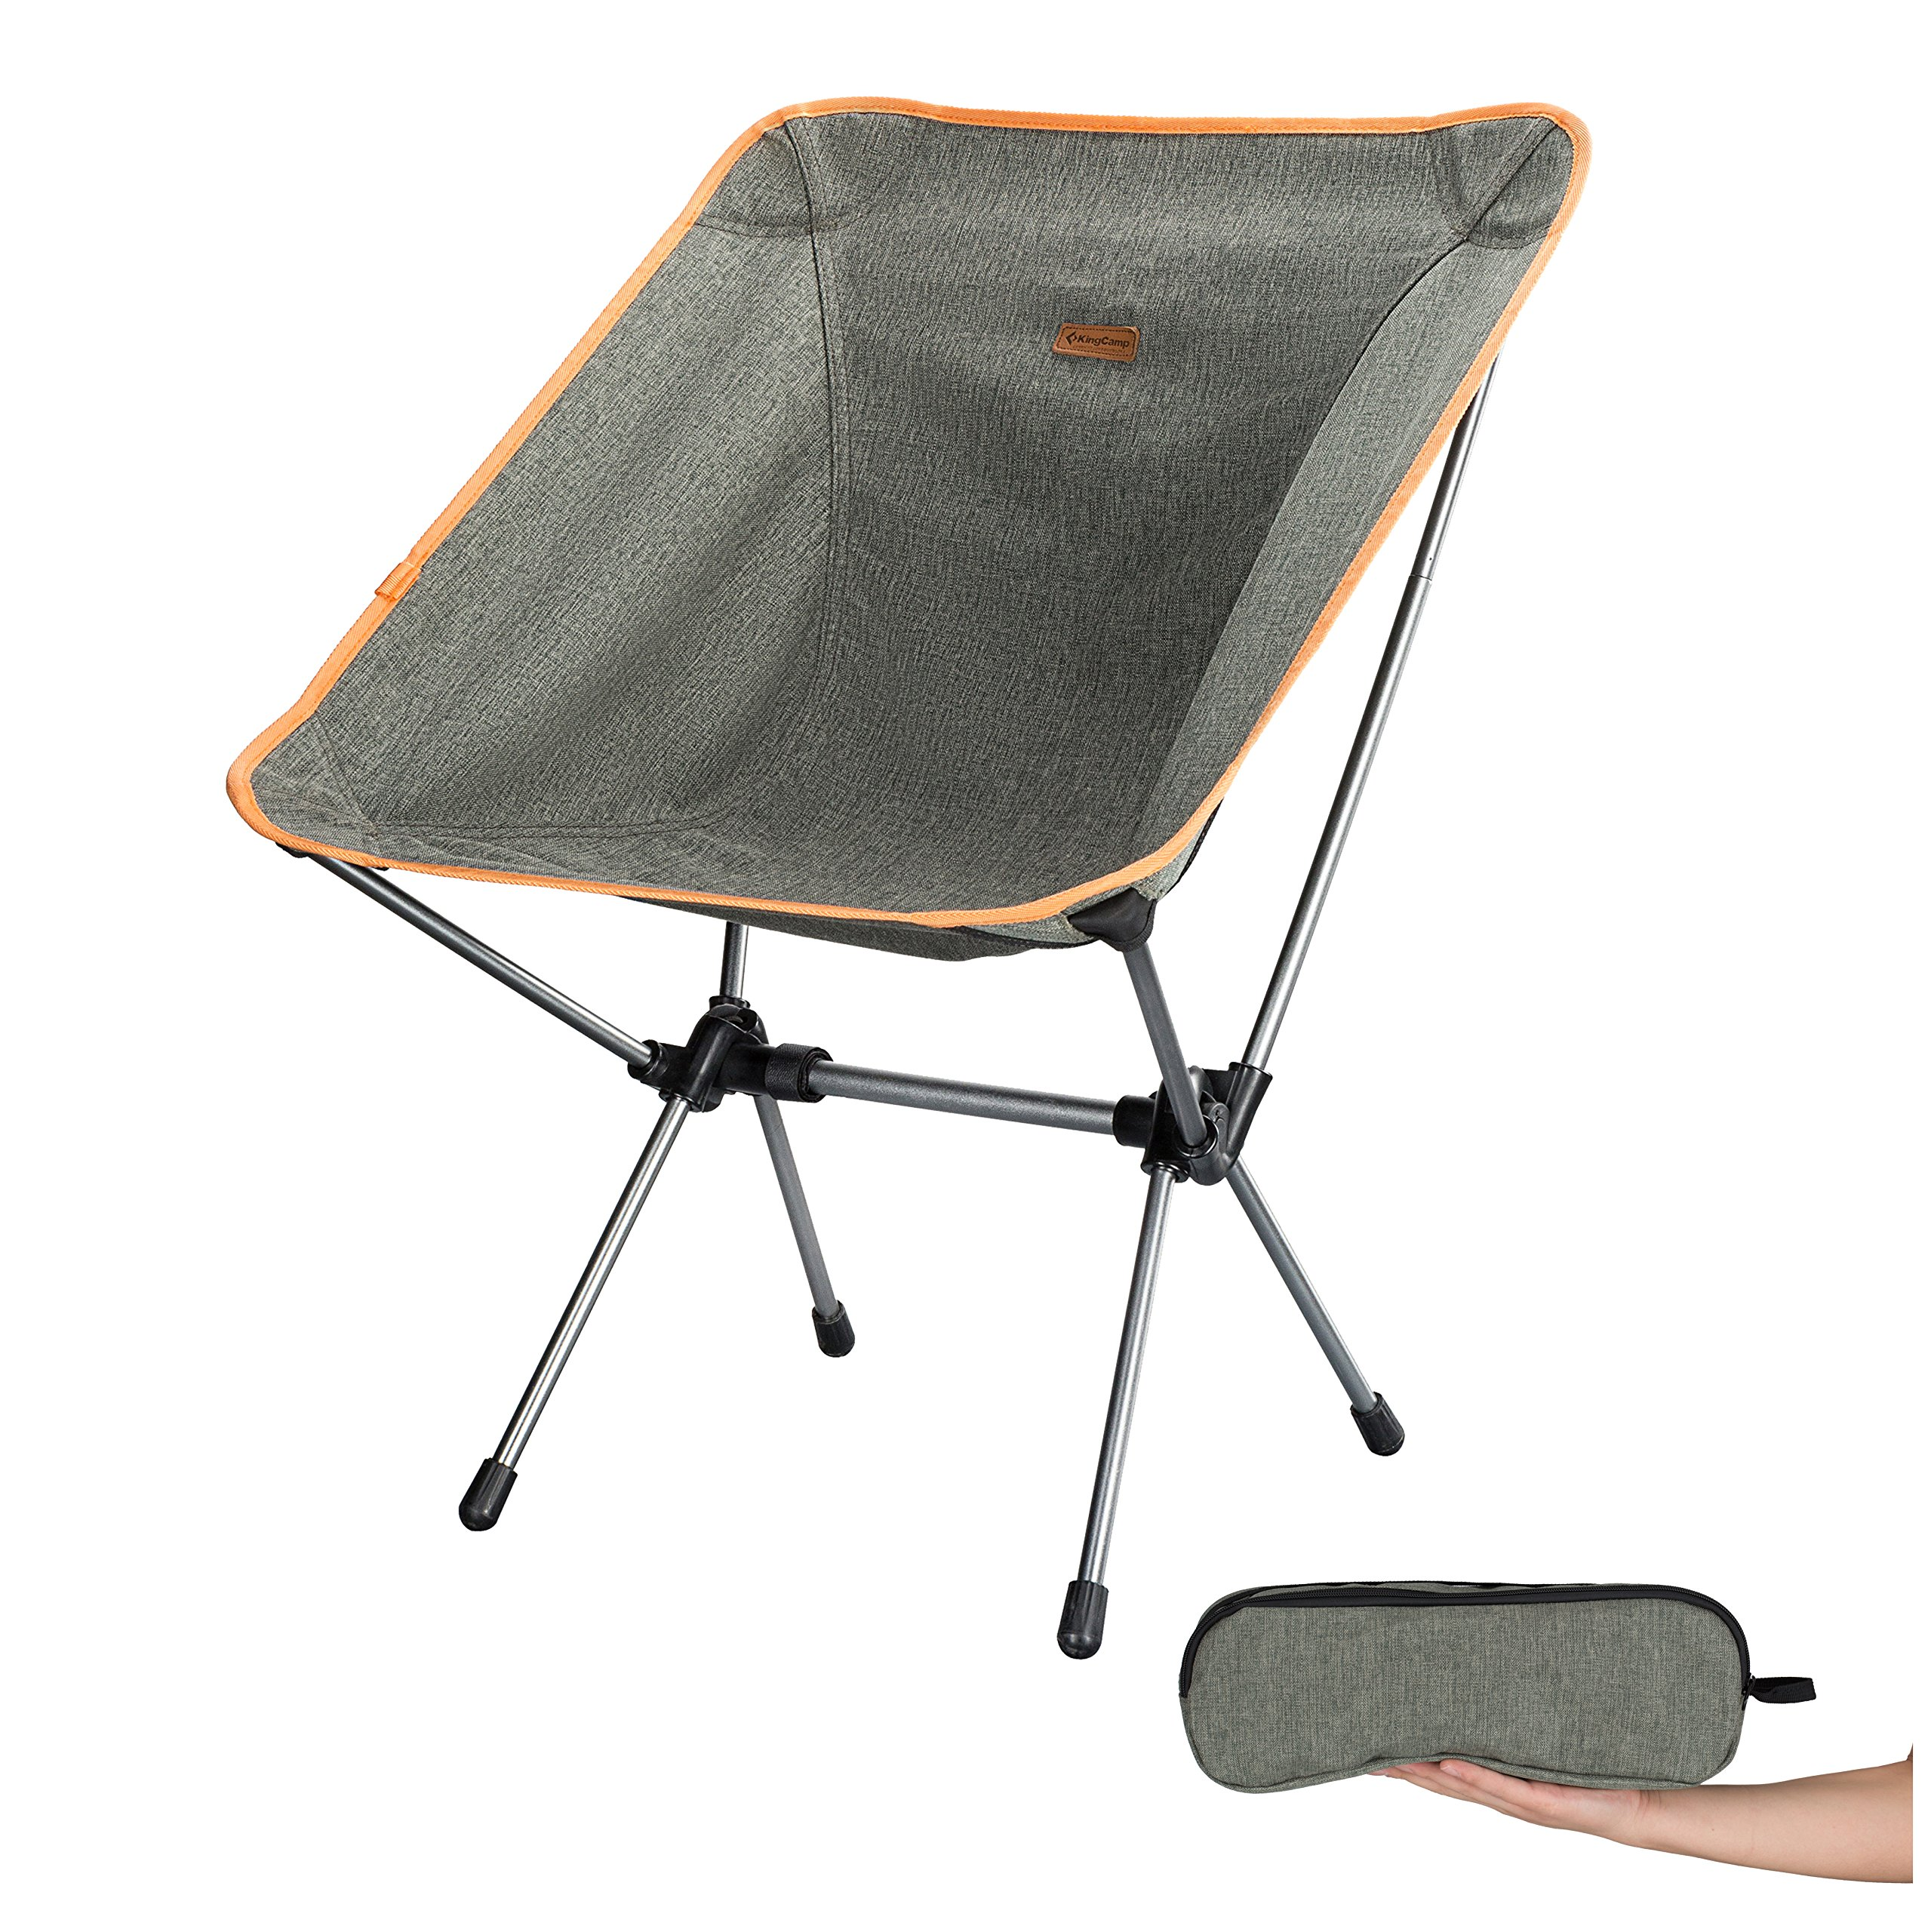 KingCamp Portable Camping Beach Folding Chair Compact Ultralight & 1200D Oxford Heavy Duty Chair 300lbs Weight Capacity, Backpacking Camping Chairs for Hiking, Beach, Concerts, Fishing, Outdoor. by KingCamp